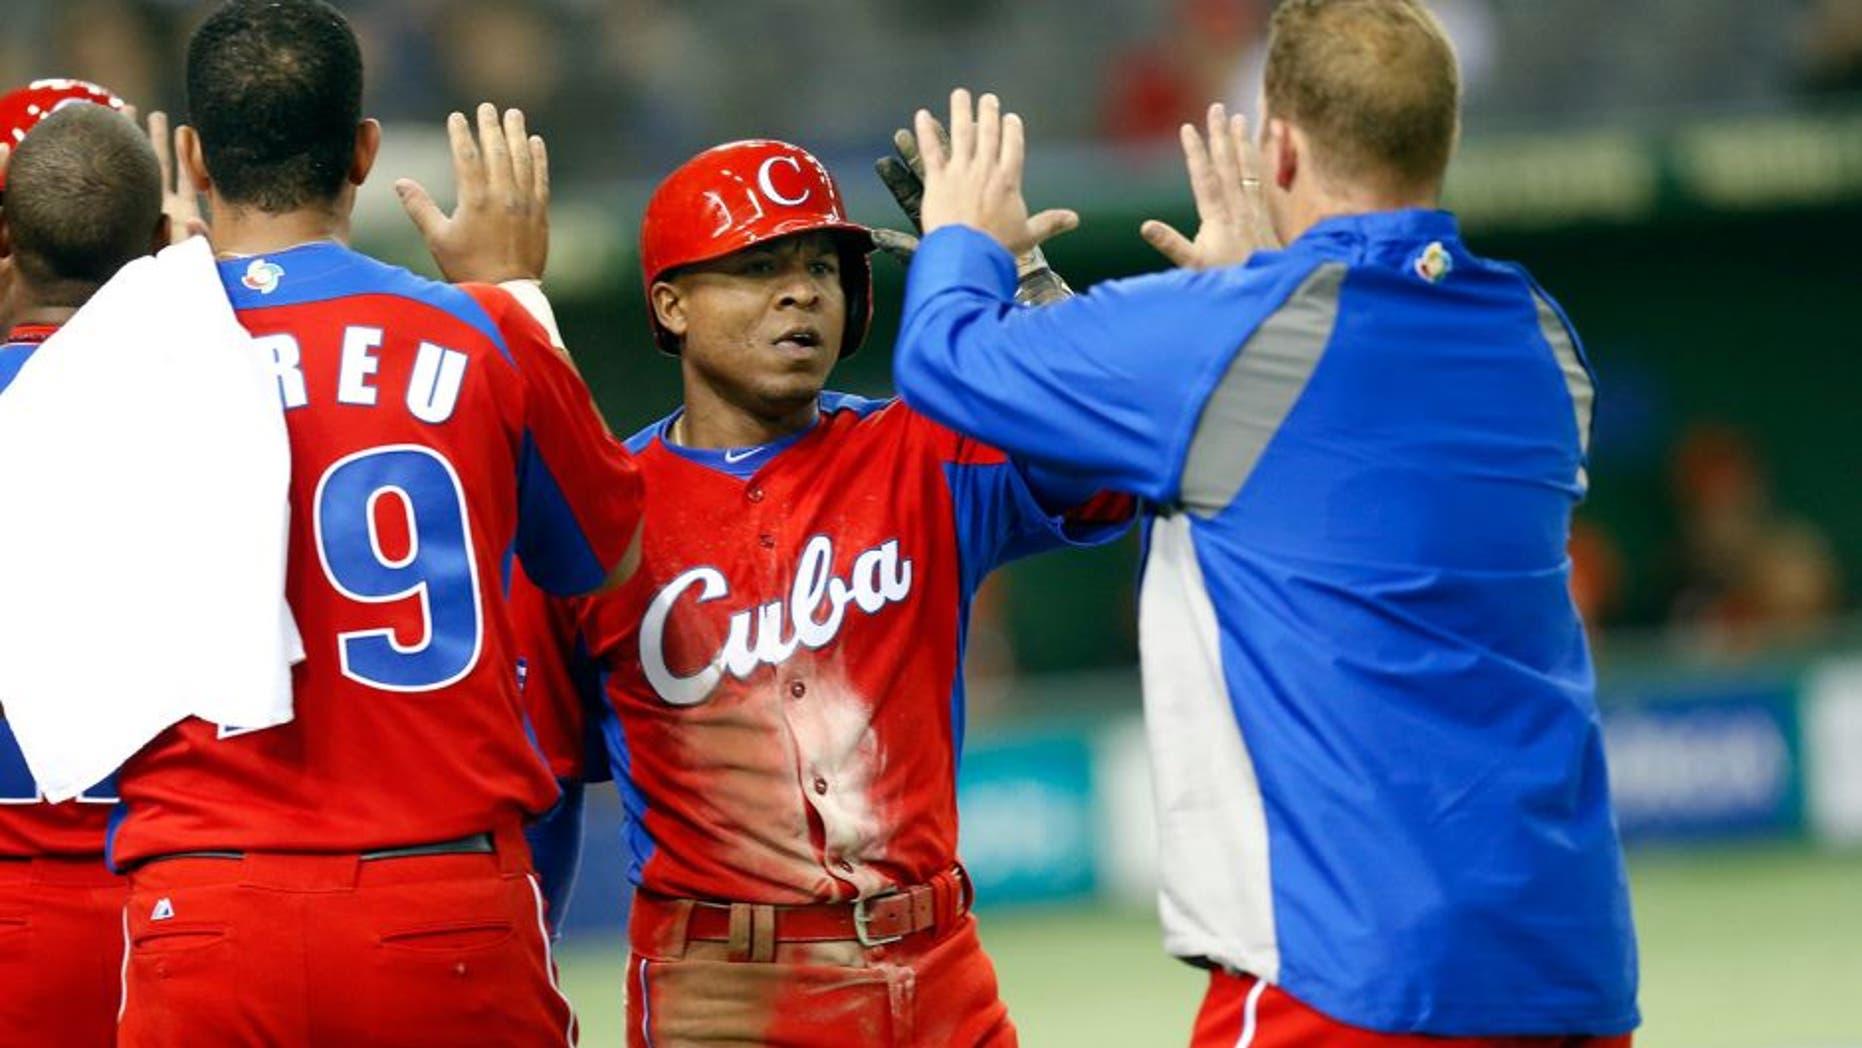 TOKYO, JAPAN - MARCH 11: Alexei Bell #88 of Team Cuba is greeted by teammates after scoring a run in the top of the fifth inning during action against Team Netherlands Pool 1, Game 5 in the second round of the 2013 World Baseball Classic at the Tokyo Dome on March 11, 2013 in Tokyo, Japan. (Photo by Yuki Taguchi/WBCI/MLB Photos via Getty Images)